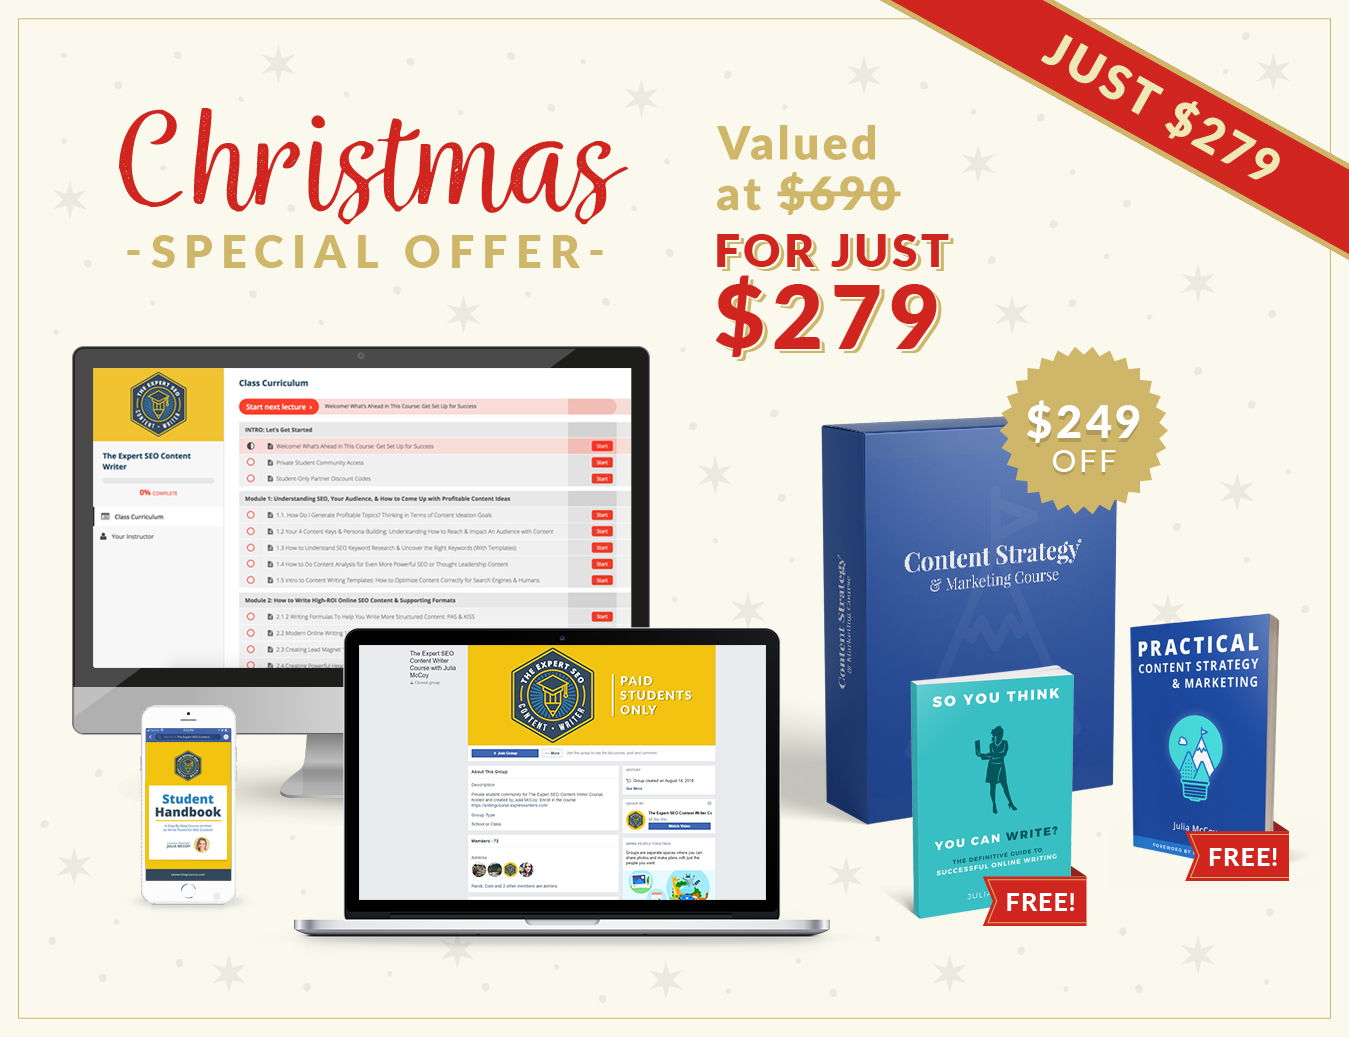 seo writing course christmas offer